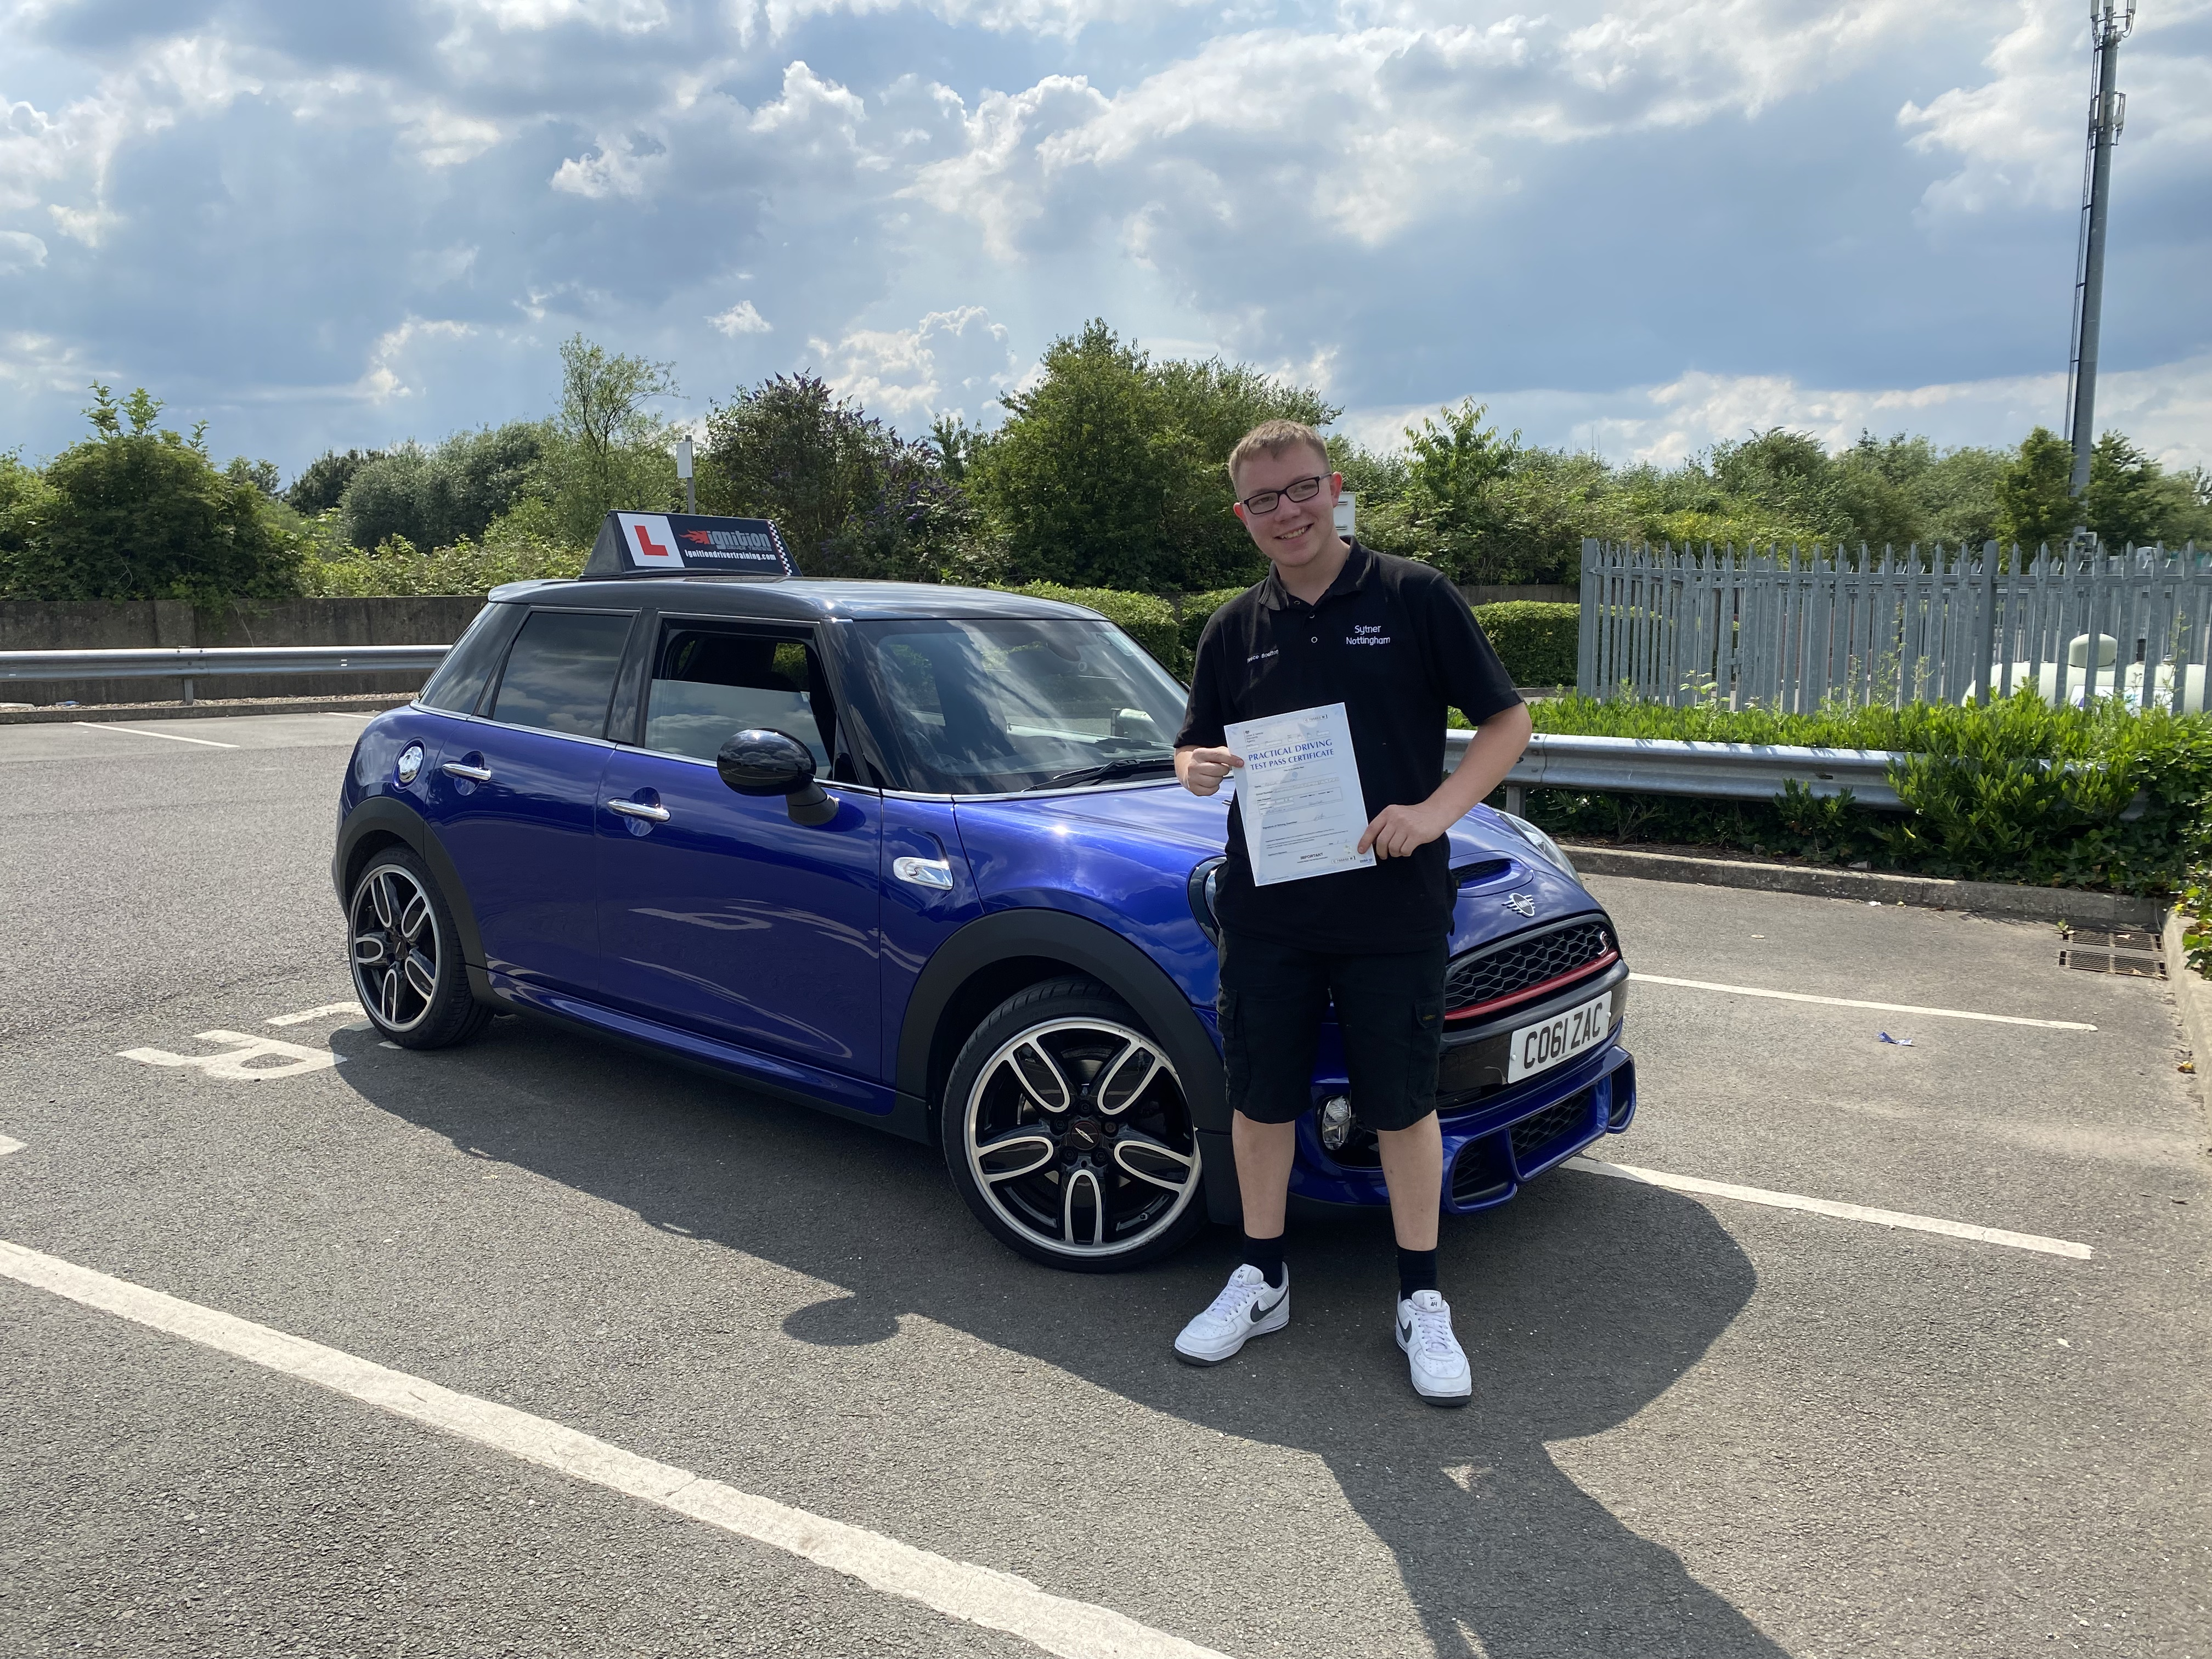 Reece passed his test!